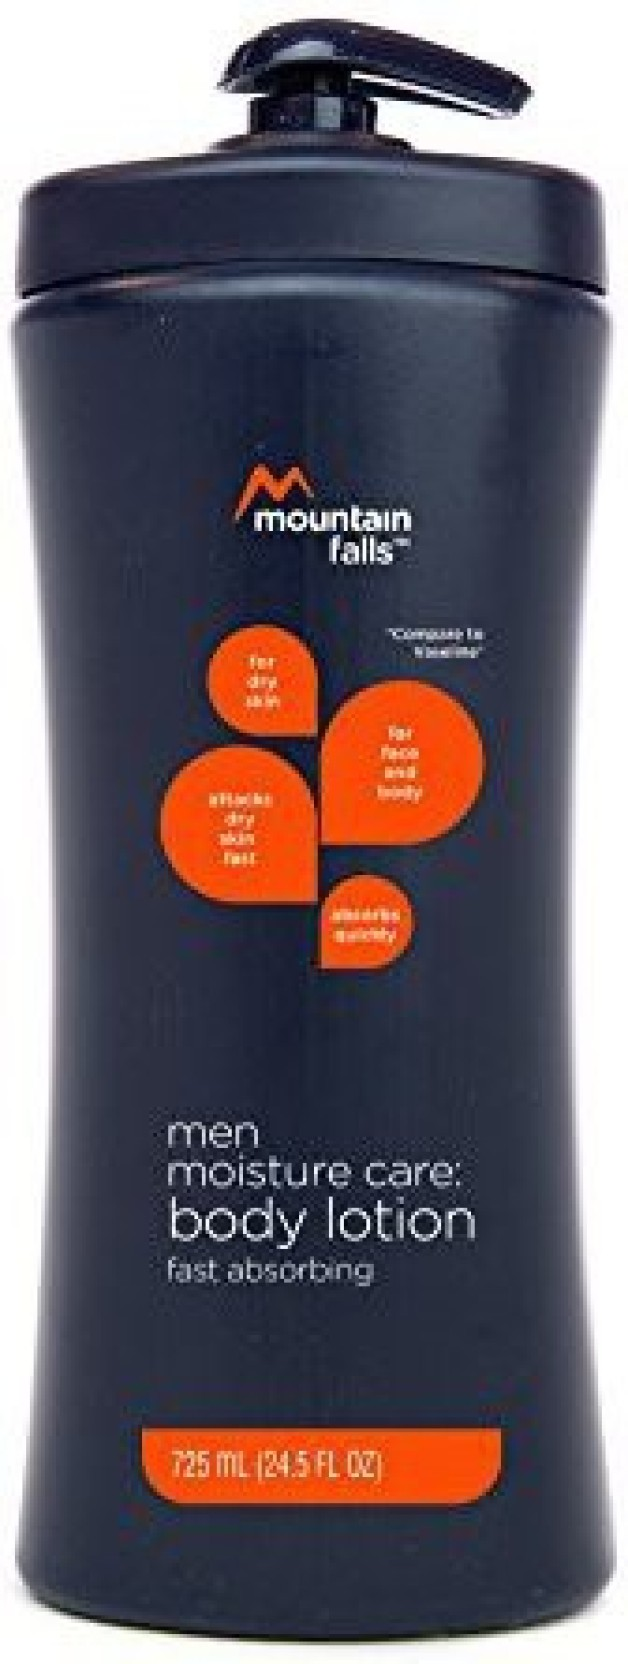 45938b7ef17a Mountain Falls Moisture Care: Men'S Body Lotion, Fast Absorbing ...